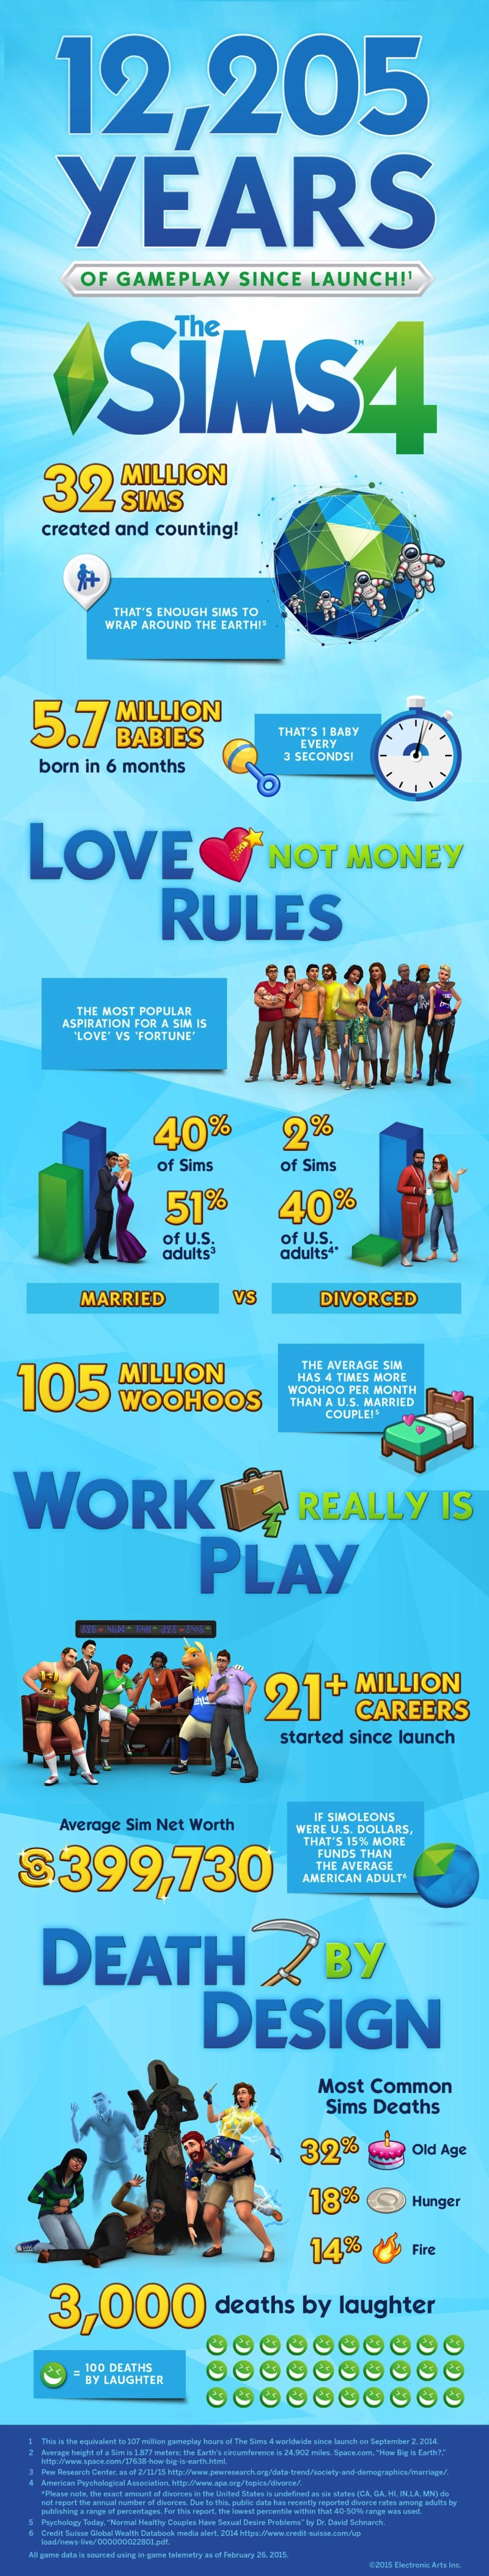 EA TheSims4 Infographic Finaljpg